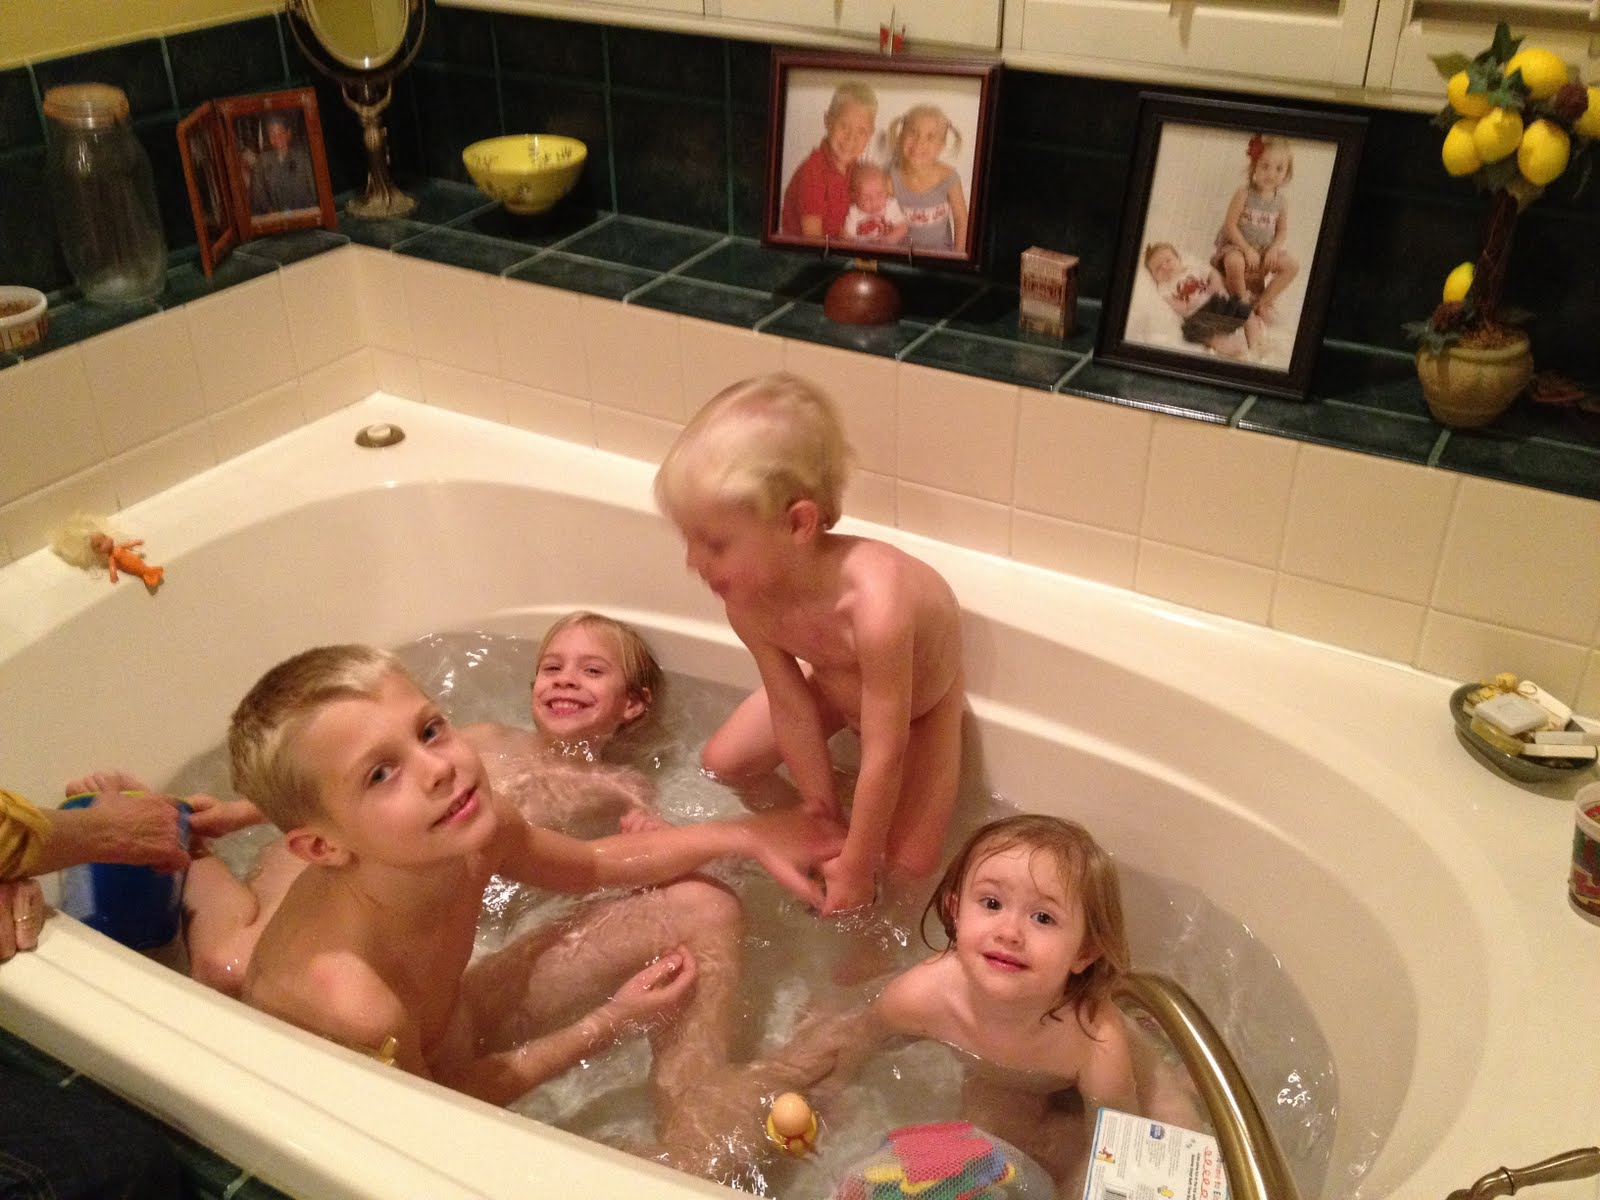 Family Bath Together Love bathing together in